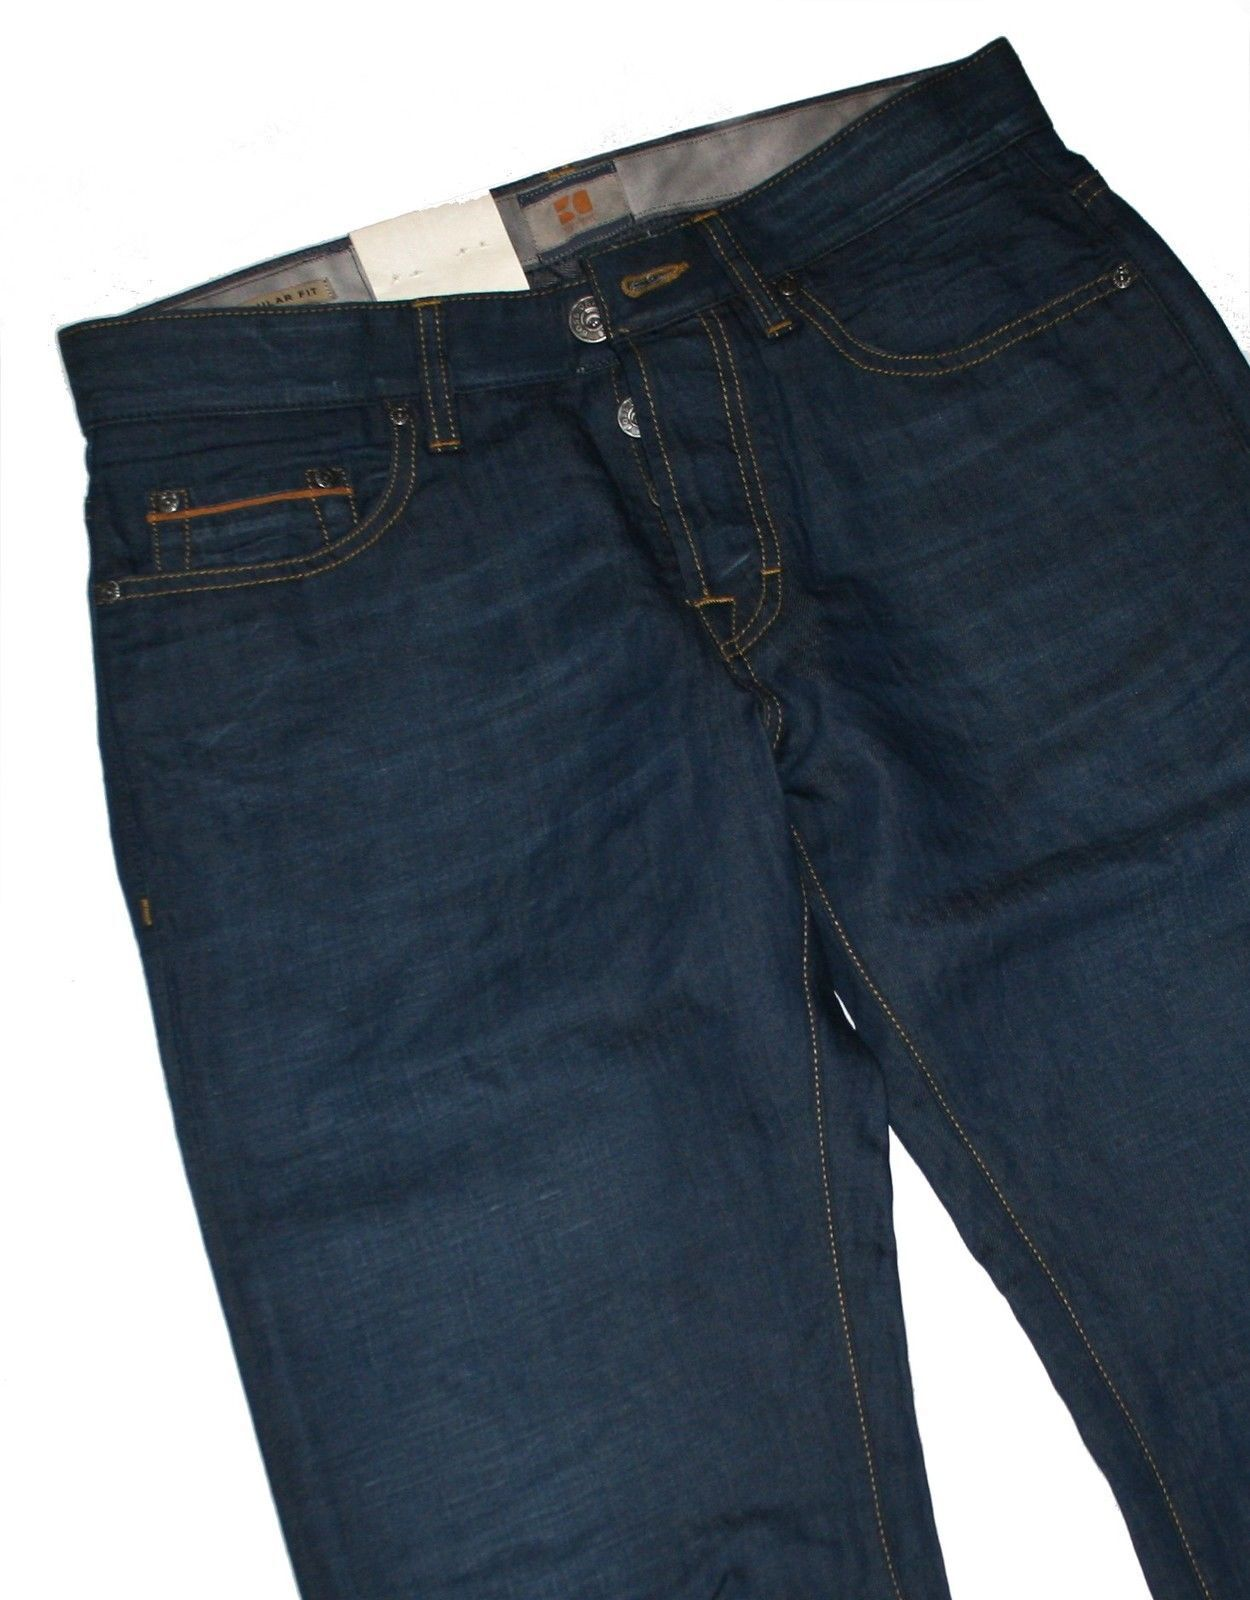 Hugo Boss 50238293 Dark bluee Denim orange 25 Issue Jeans - 43% Canvas W32 L34